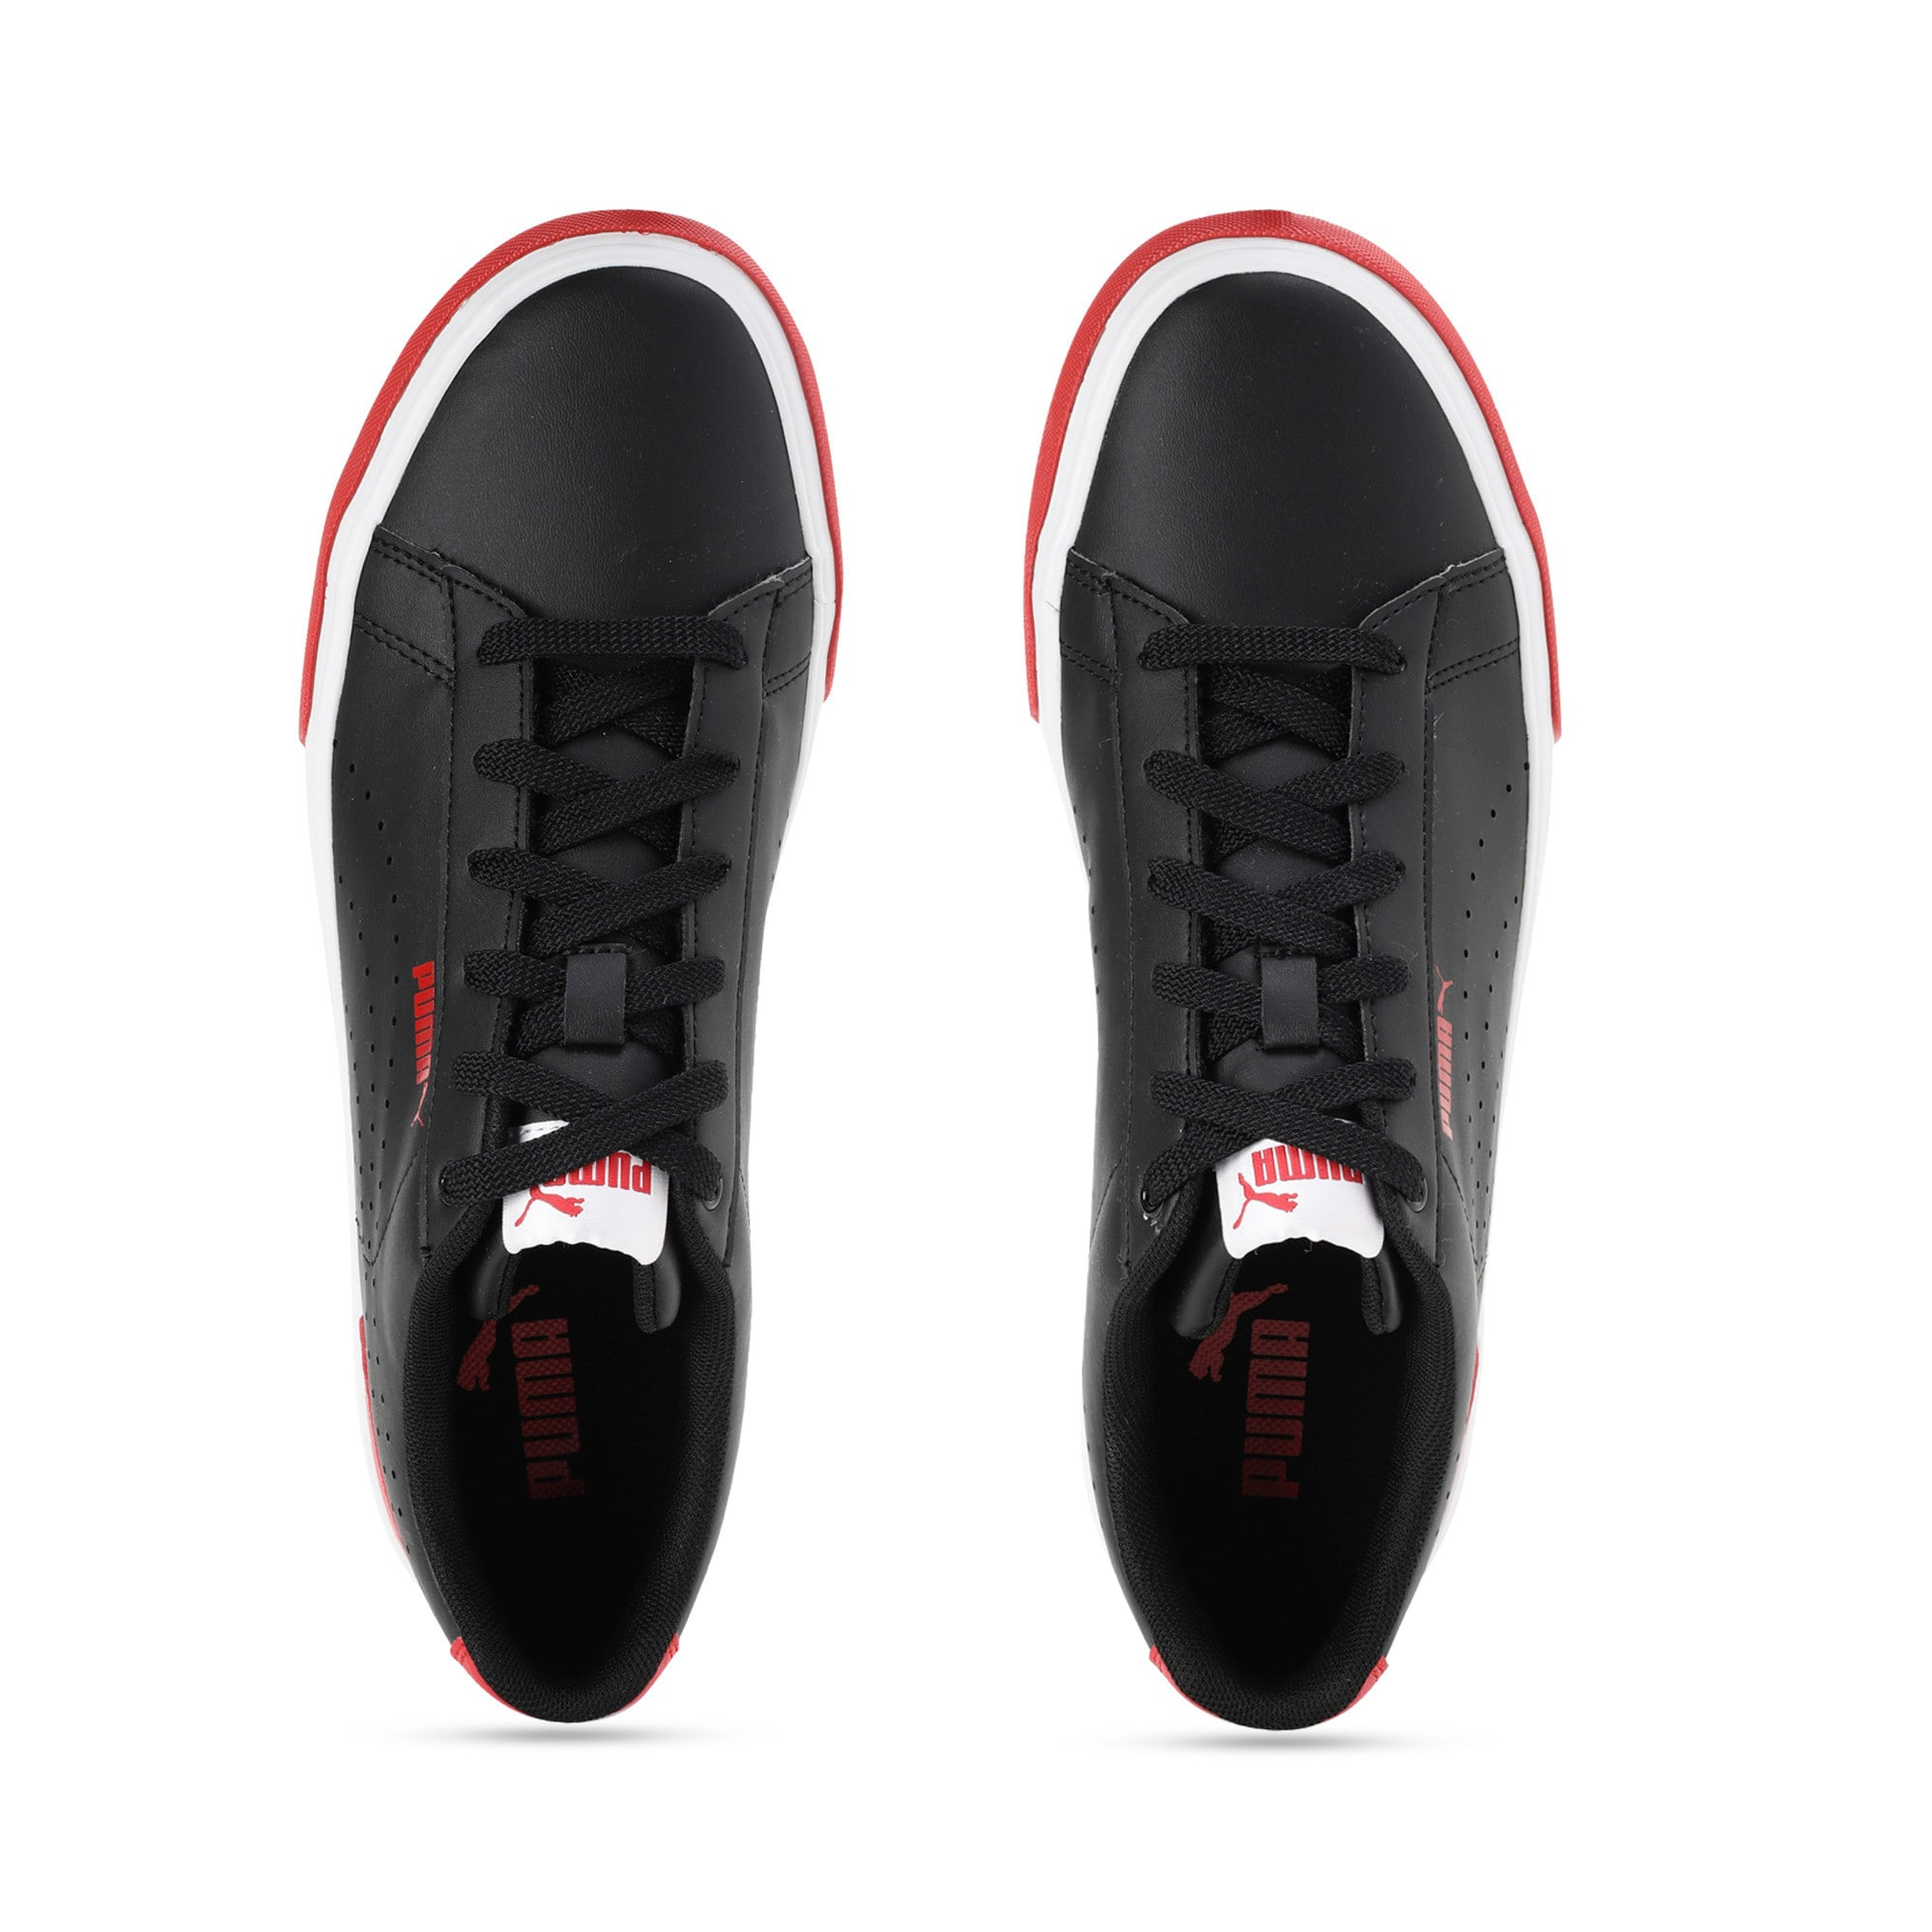 Thumbnail 4 of Flight X 2 IDP, Puma Black-High Risk Red, medium-IND